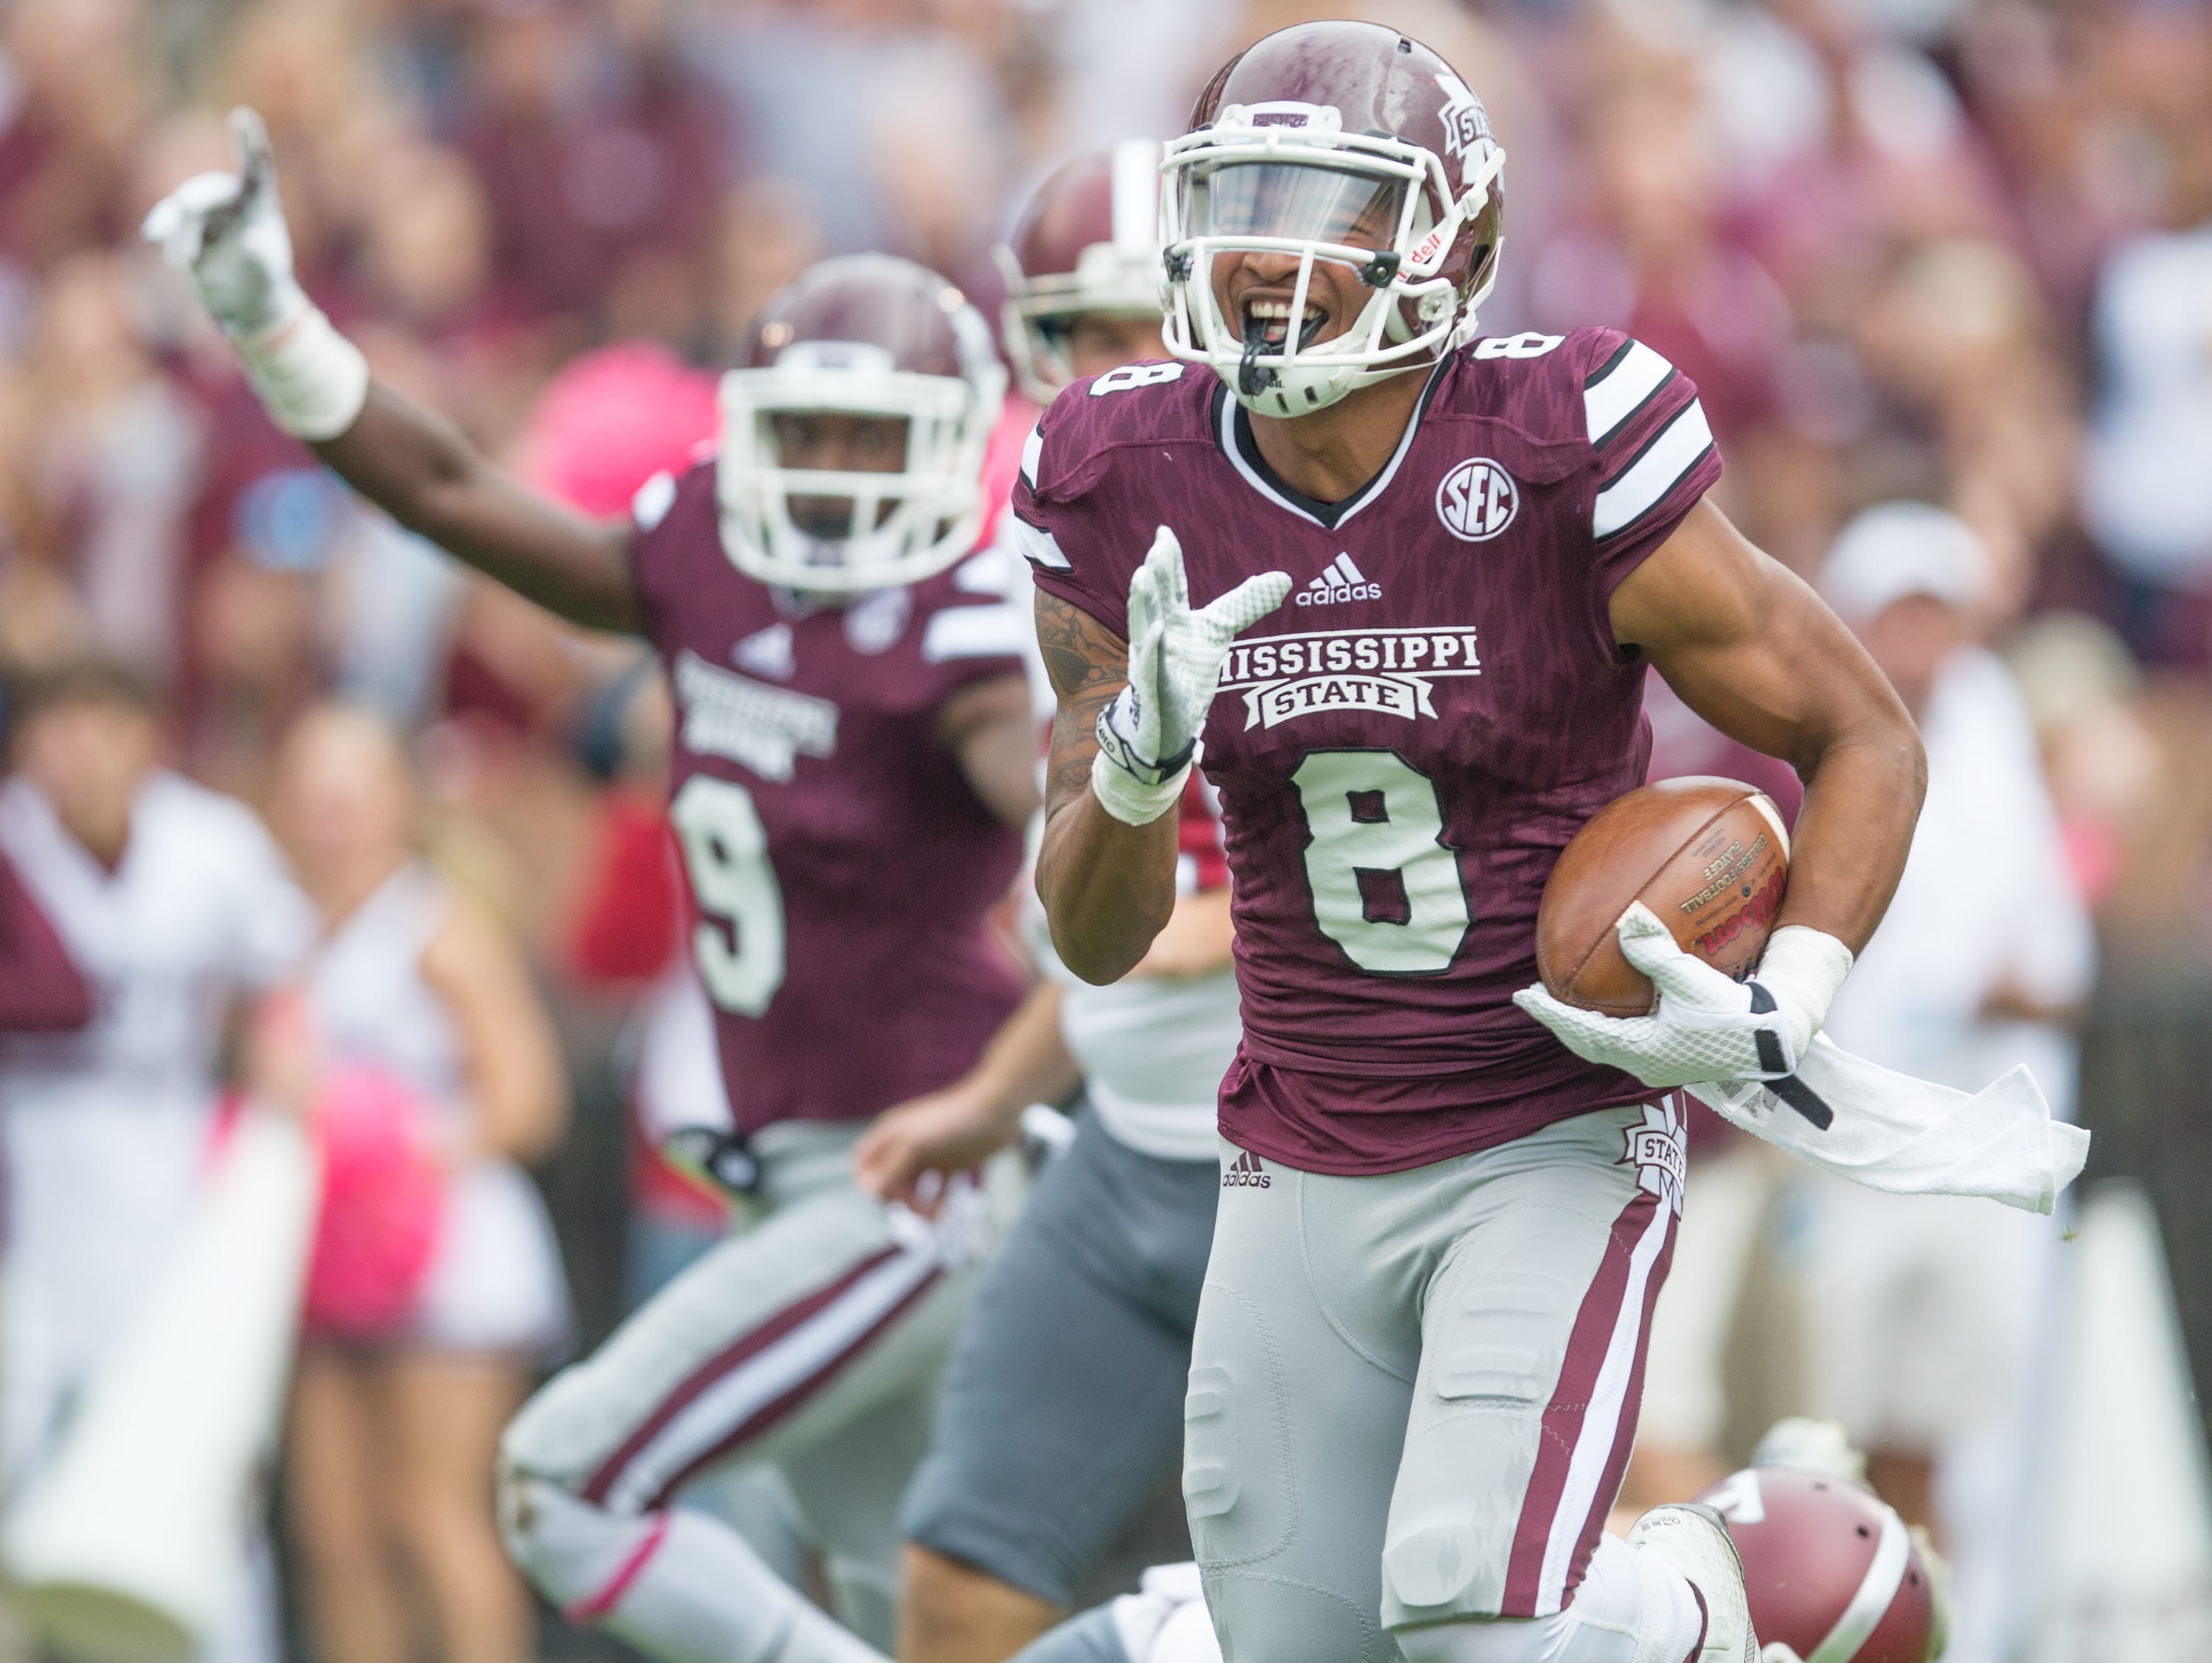 Mississippi State receiver Fred Ross (8) scores a touchdown on a punt return in the first half. Mississippi State played Troy in a college football game on Saturday, October 10, 2015 at Davis Wade Stadium in Starkville. Photo by Keith Warren (Mandatory Photo Credit)